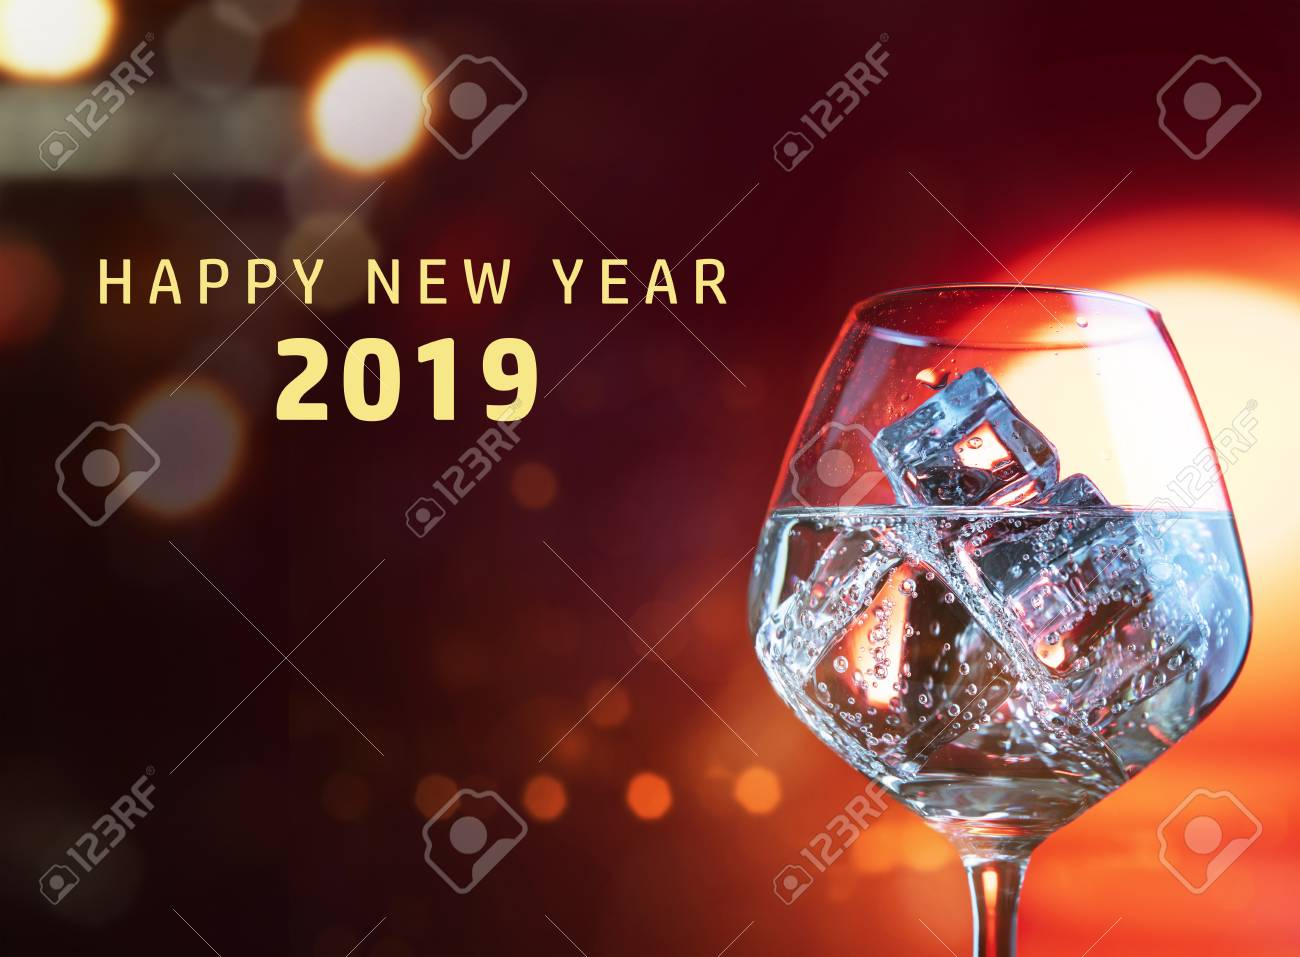 stock photo wine glasses and happy new year 2019 greeting over red bright background happy new year 2019